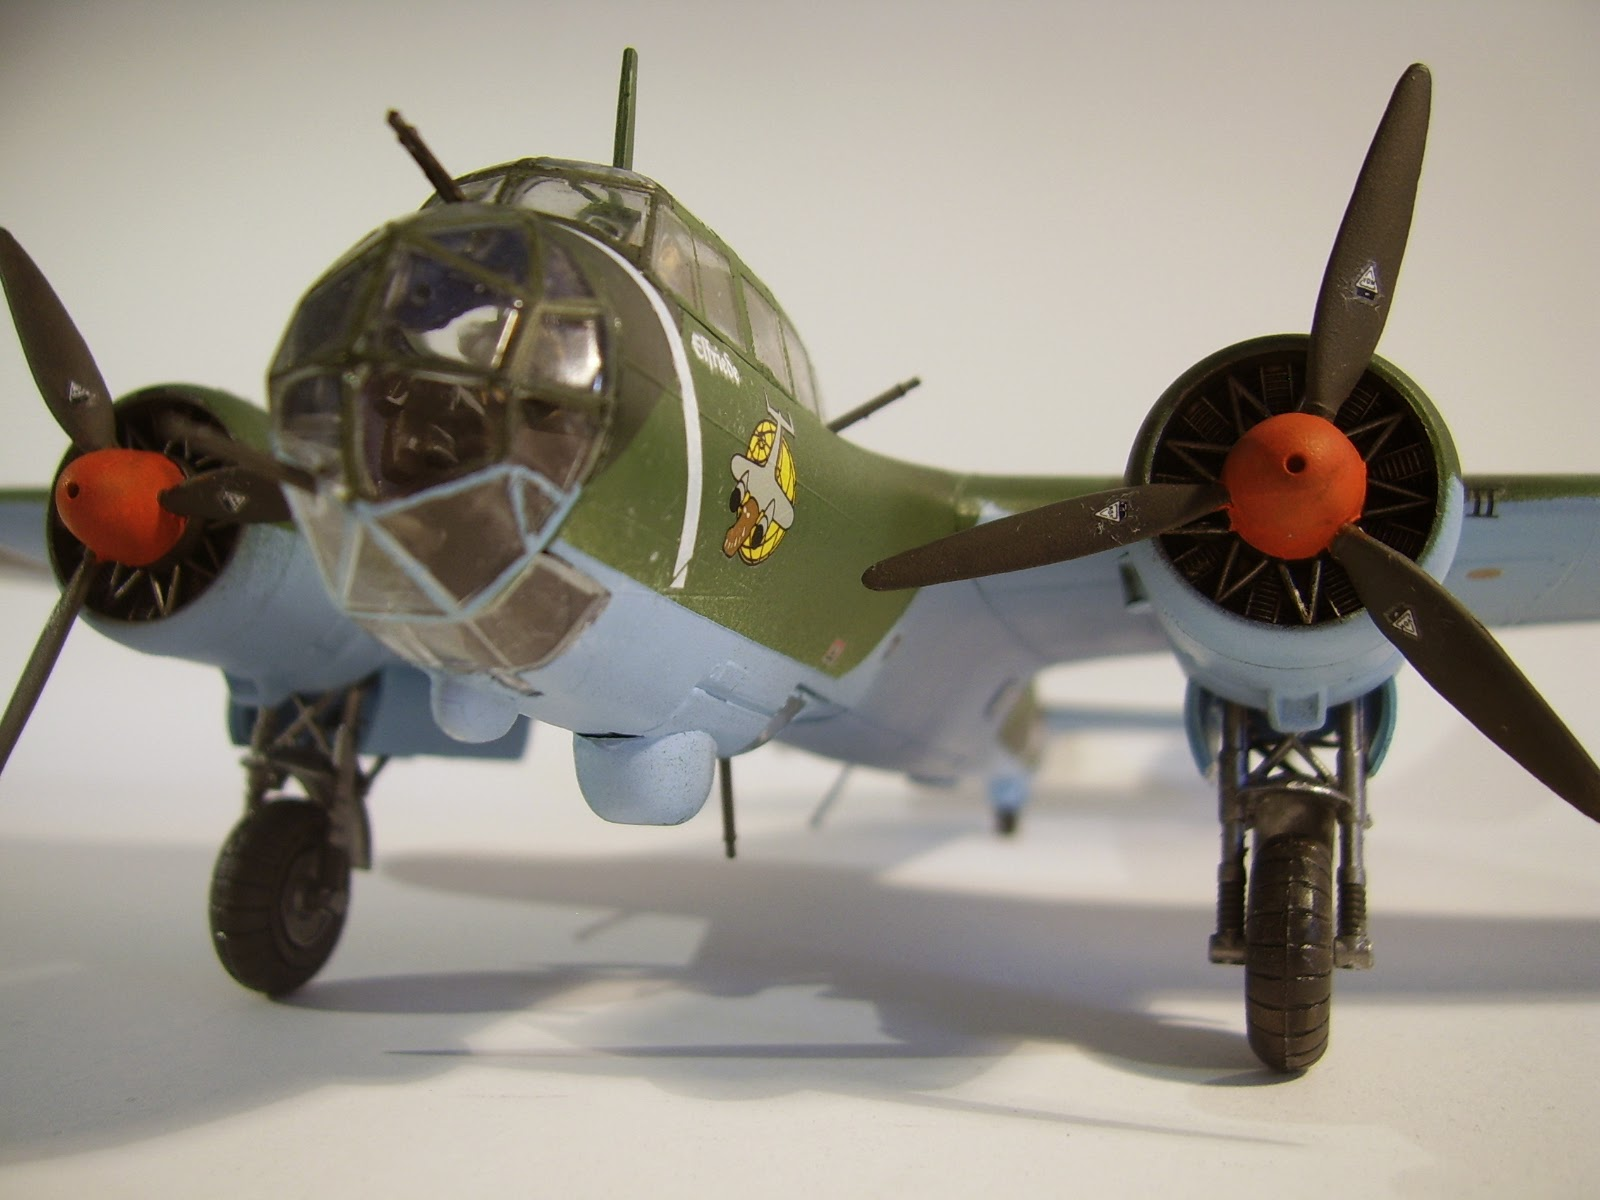 Mike's Modeling: Dornier Do 17 Z